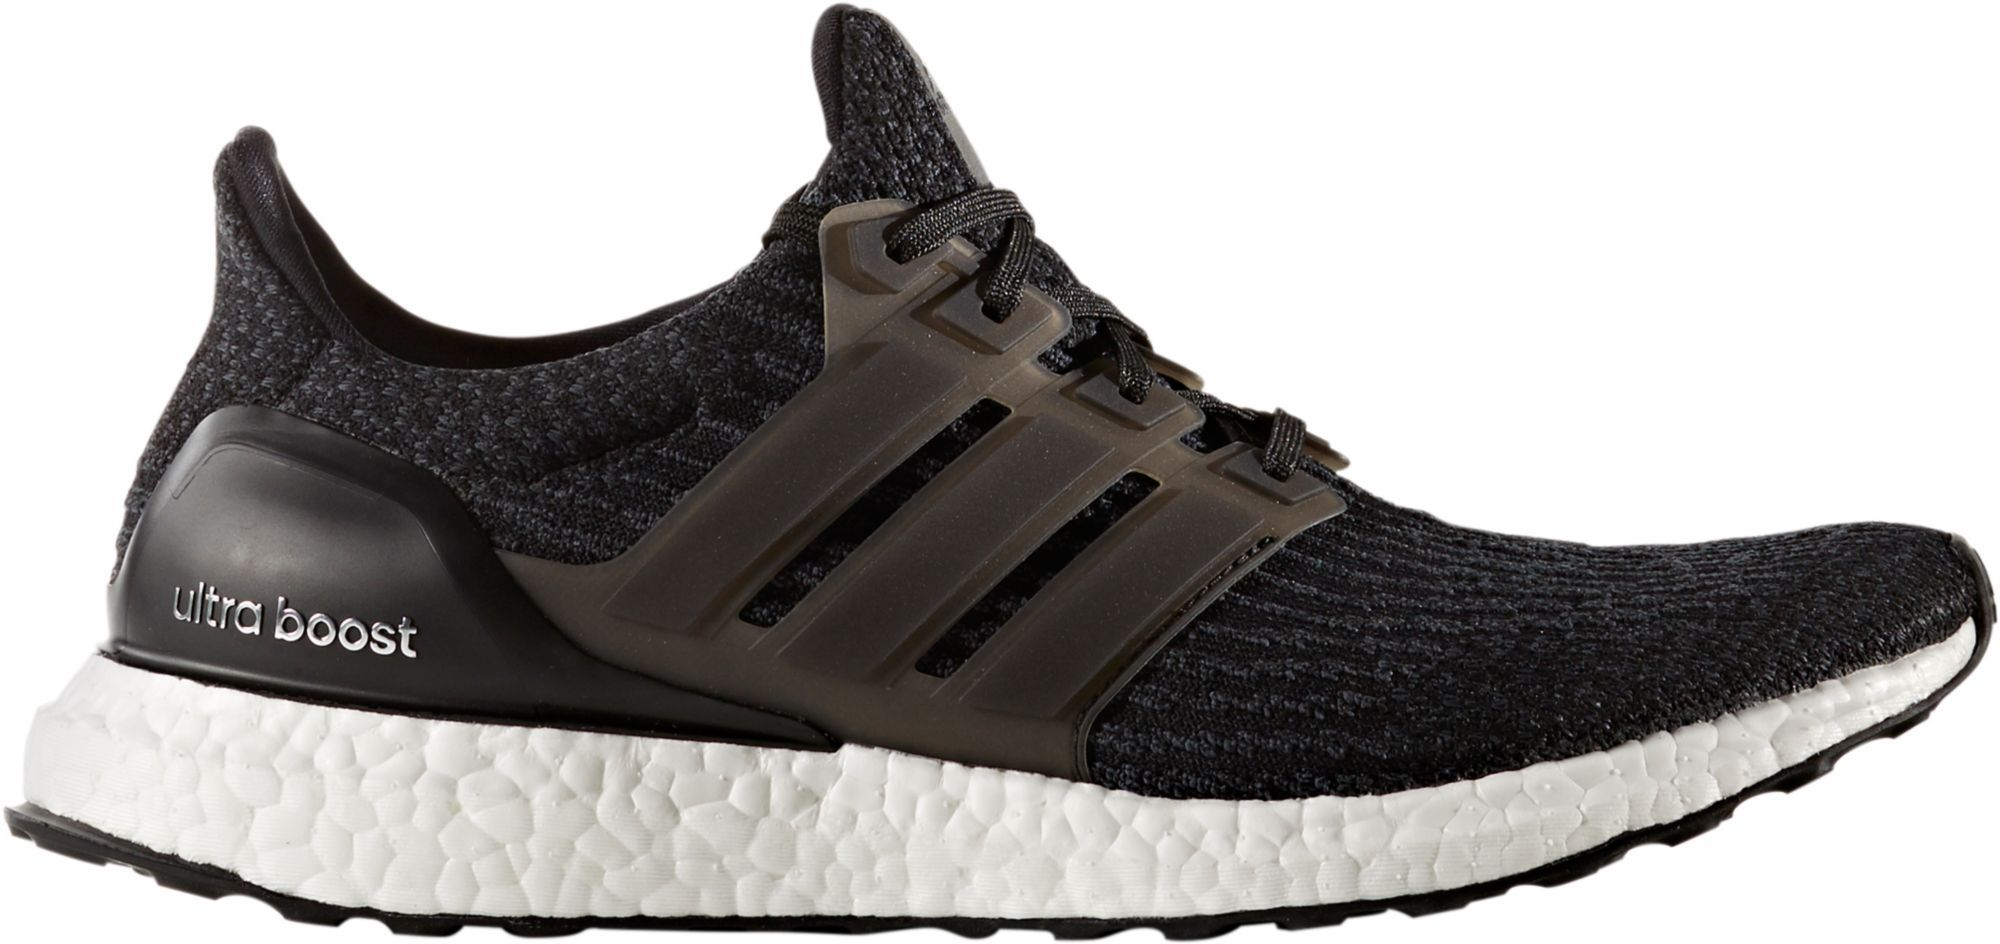 30e2087fbd9d75 adidas Men s Ultraboost Running Shoes